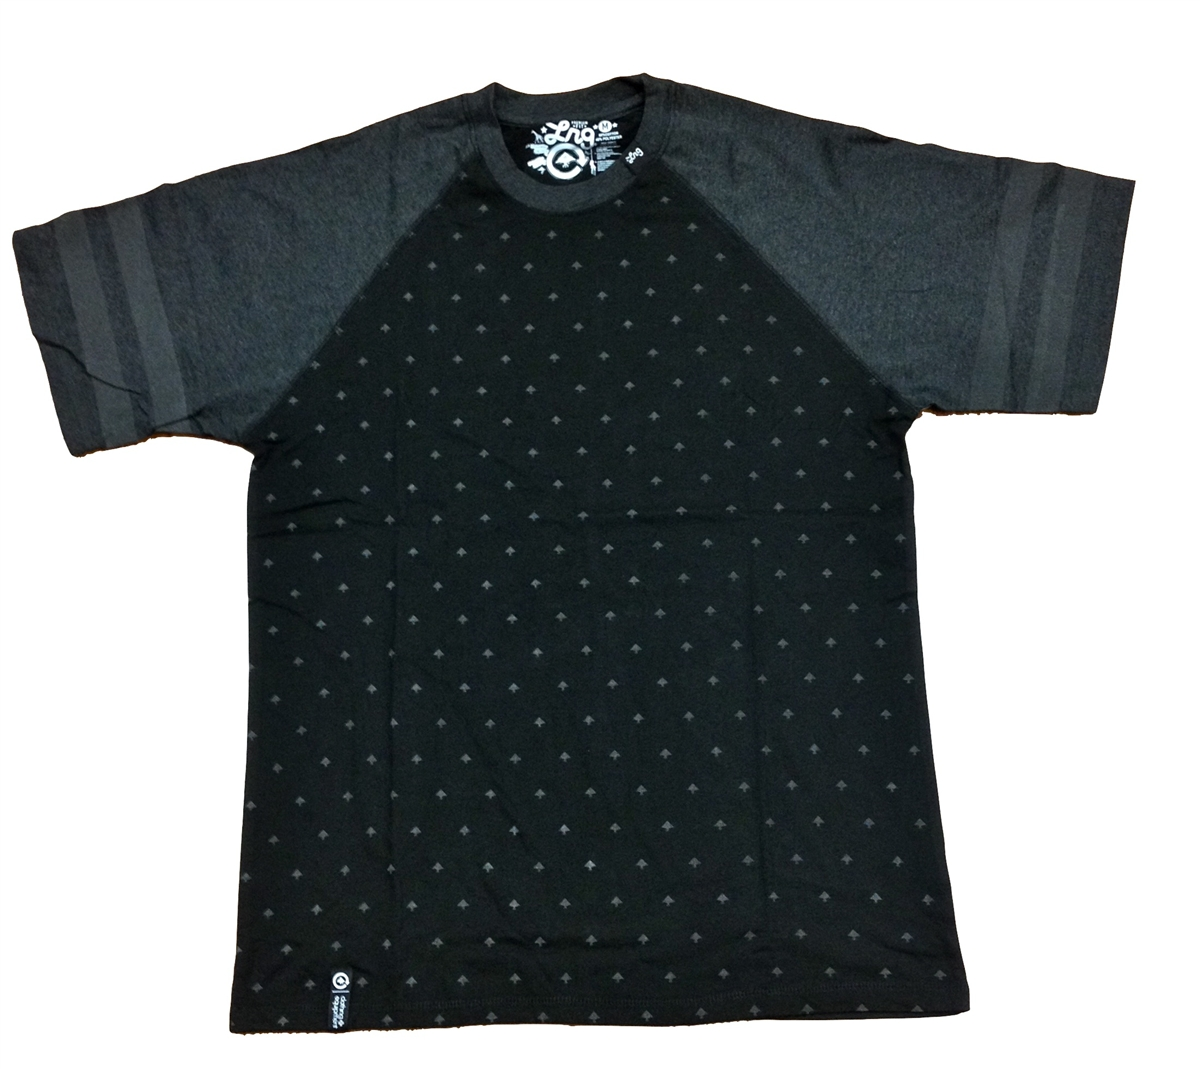 c61f17462aa2d LRG Lifted Research Group Reflective Tee Shirt Black   Charcoal